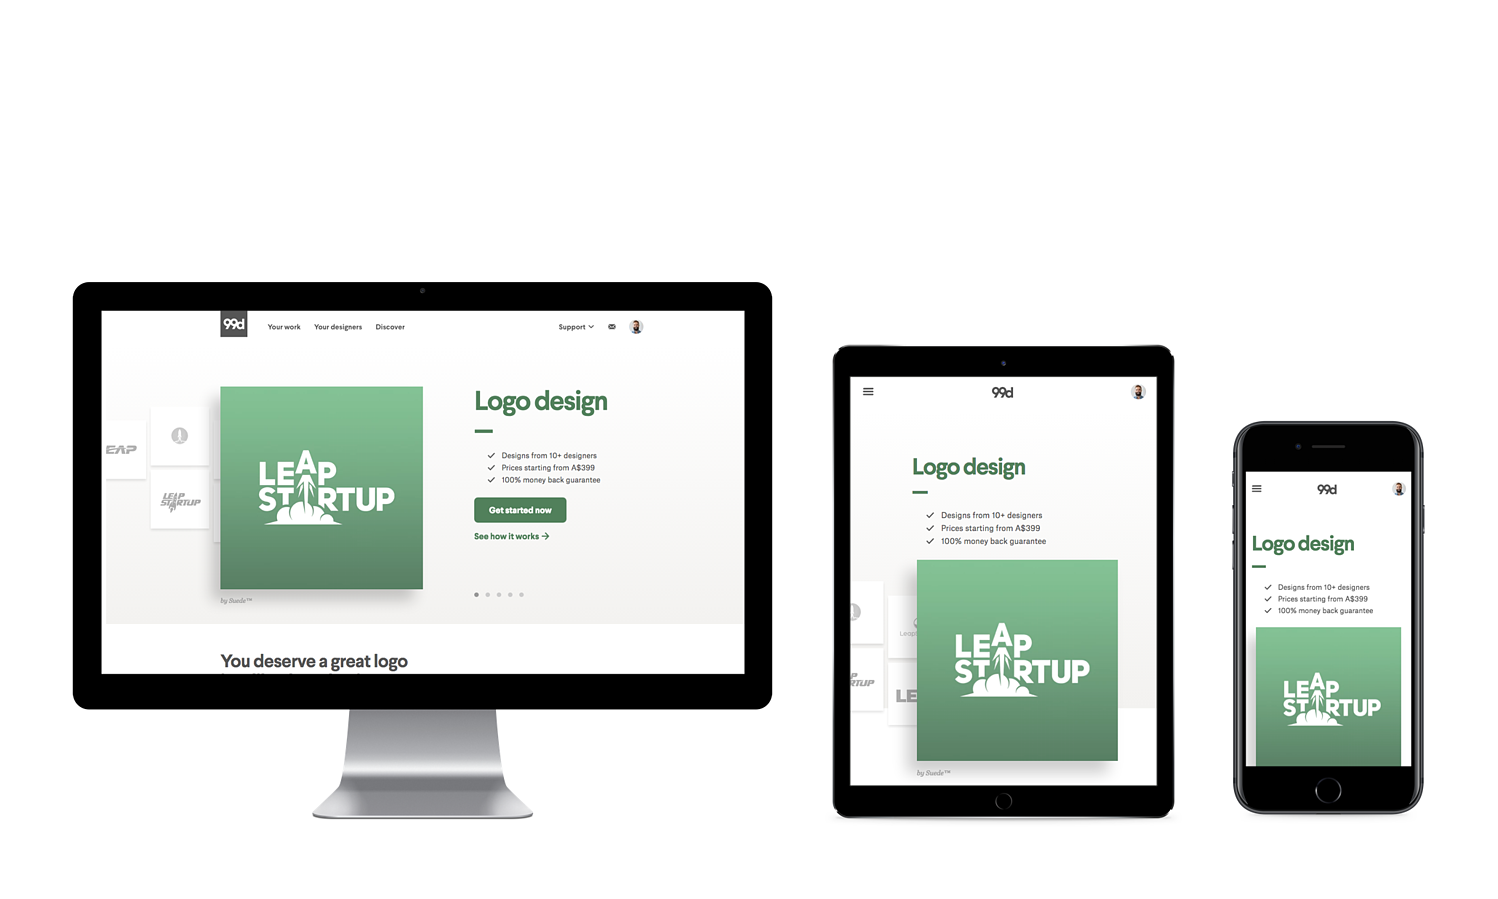 responsive web design best practices scalable images